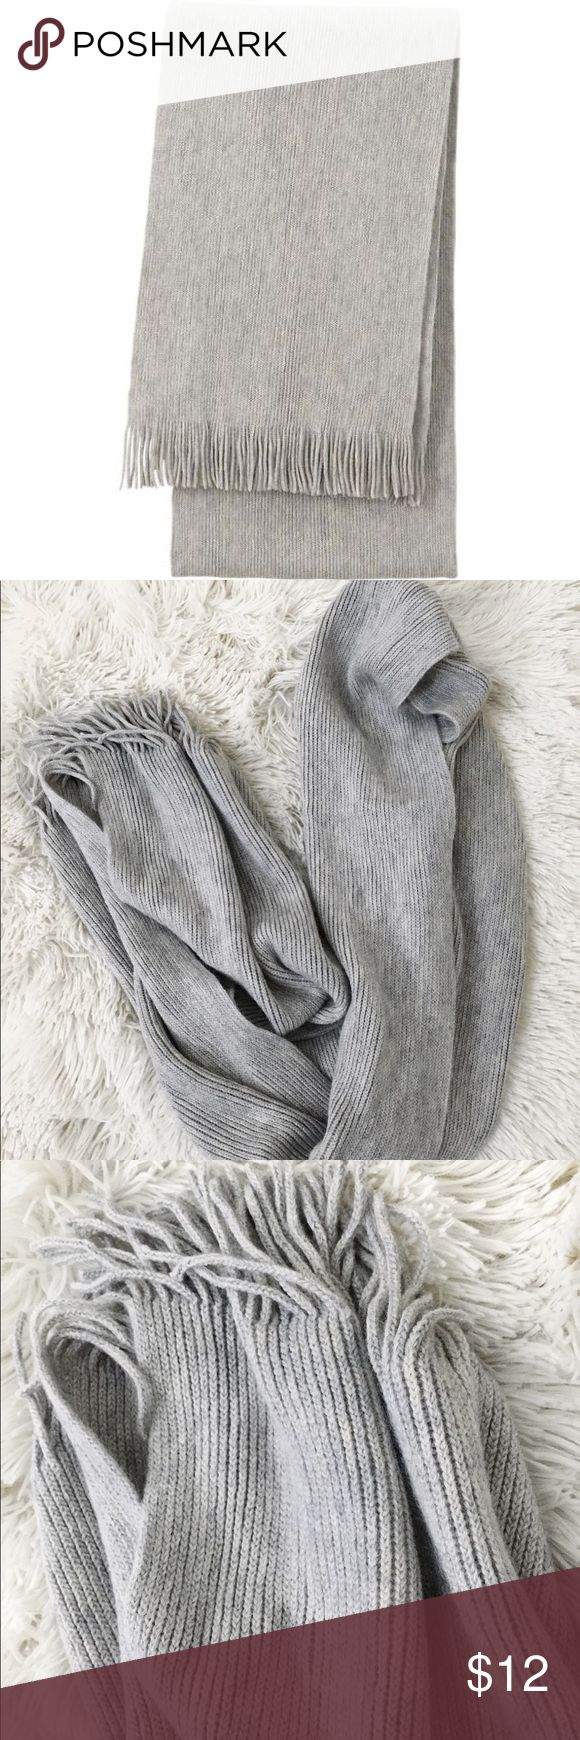 💰SALE💰2for$15💰Light grey scarf Light grey ribbed scarf  - bundle to save! Add any two items with 2for$15 in bundle and I will update the price.  #grey #scarf #winter #rib Uniqlo Accessories Scarves & Wraps